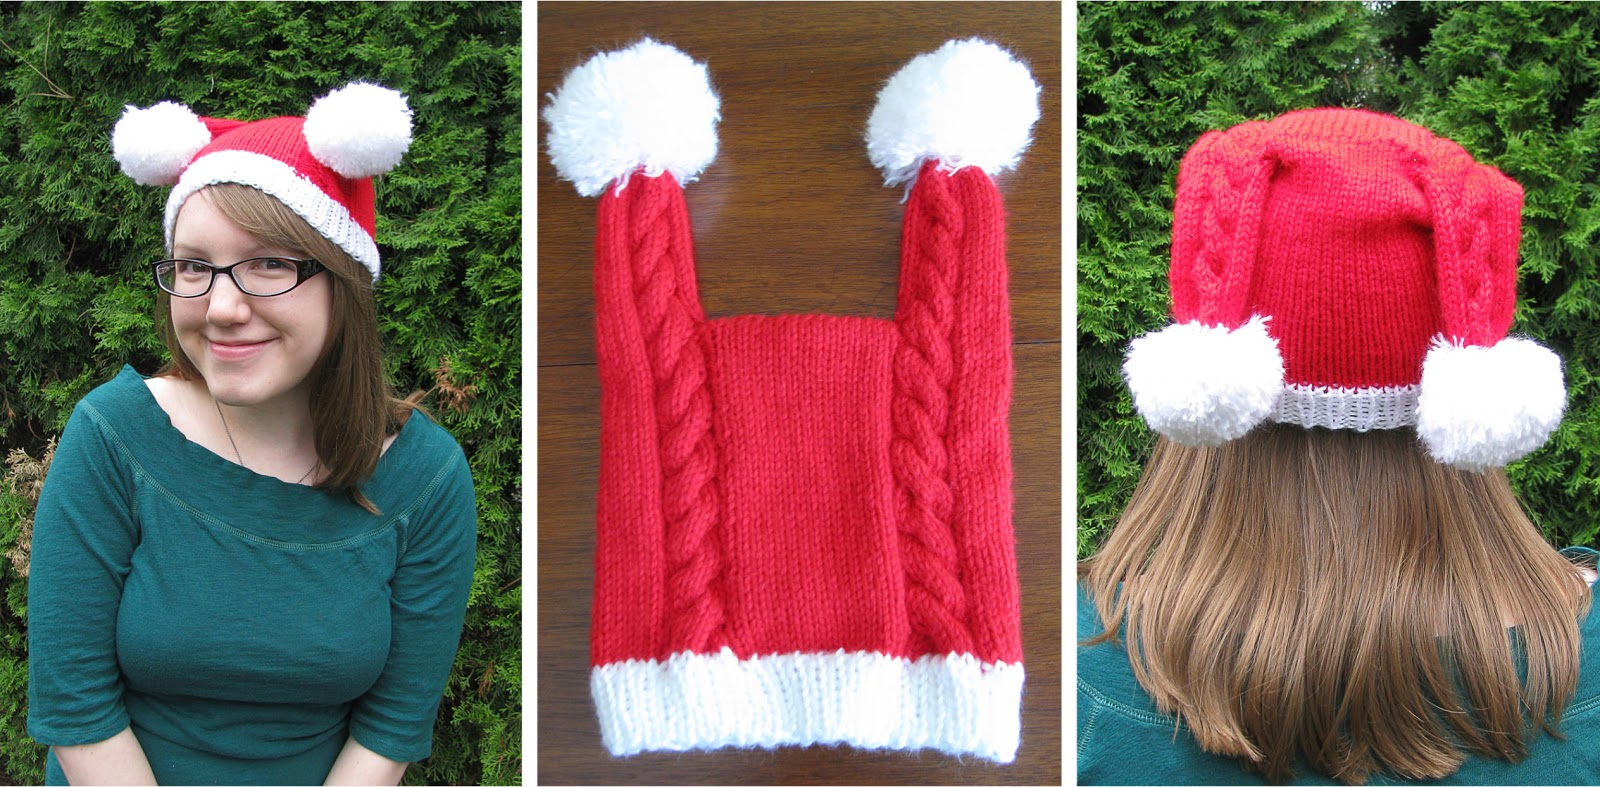 April Sprinkles: Double Tailed Santa hat